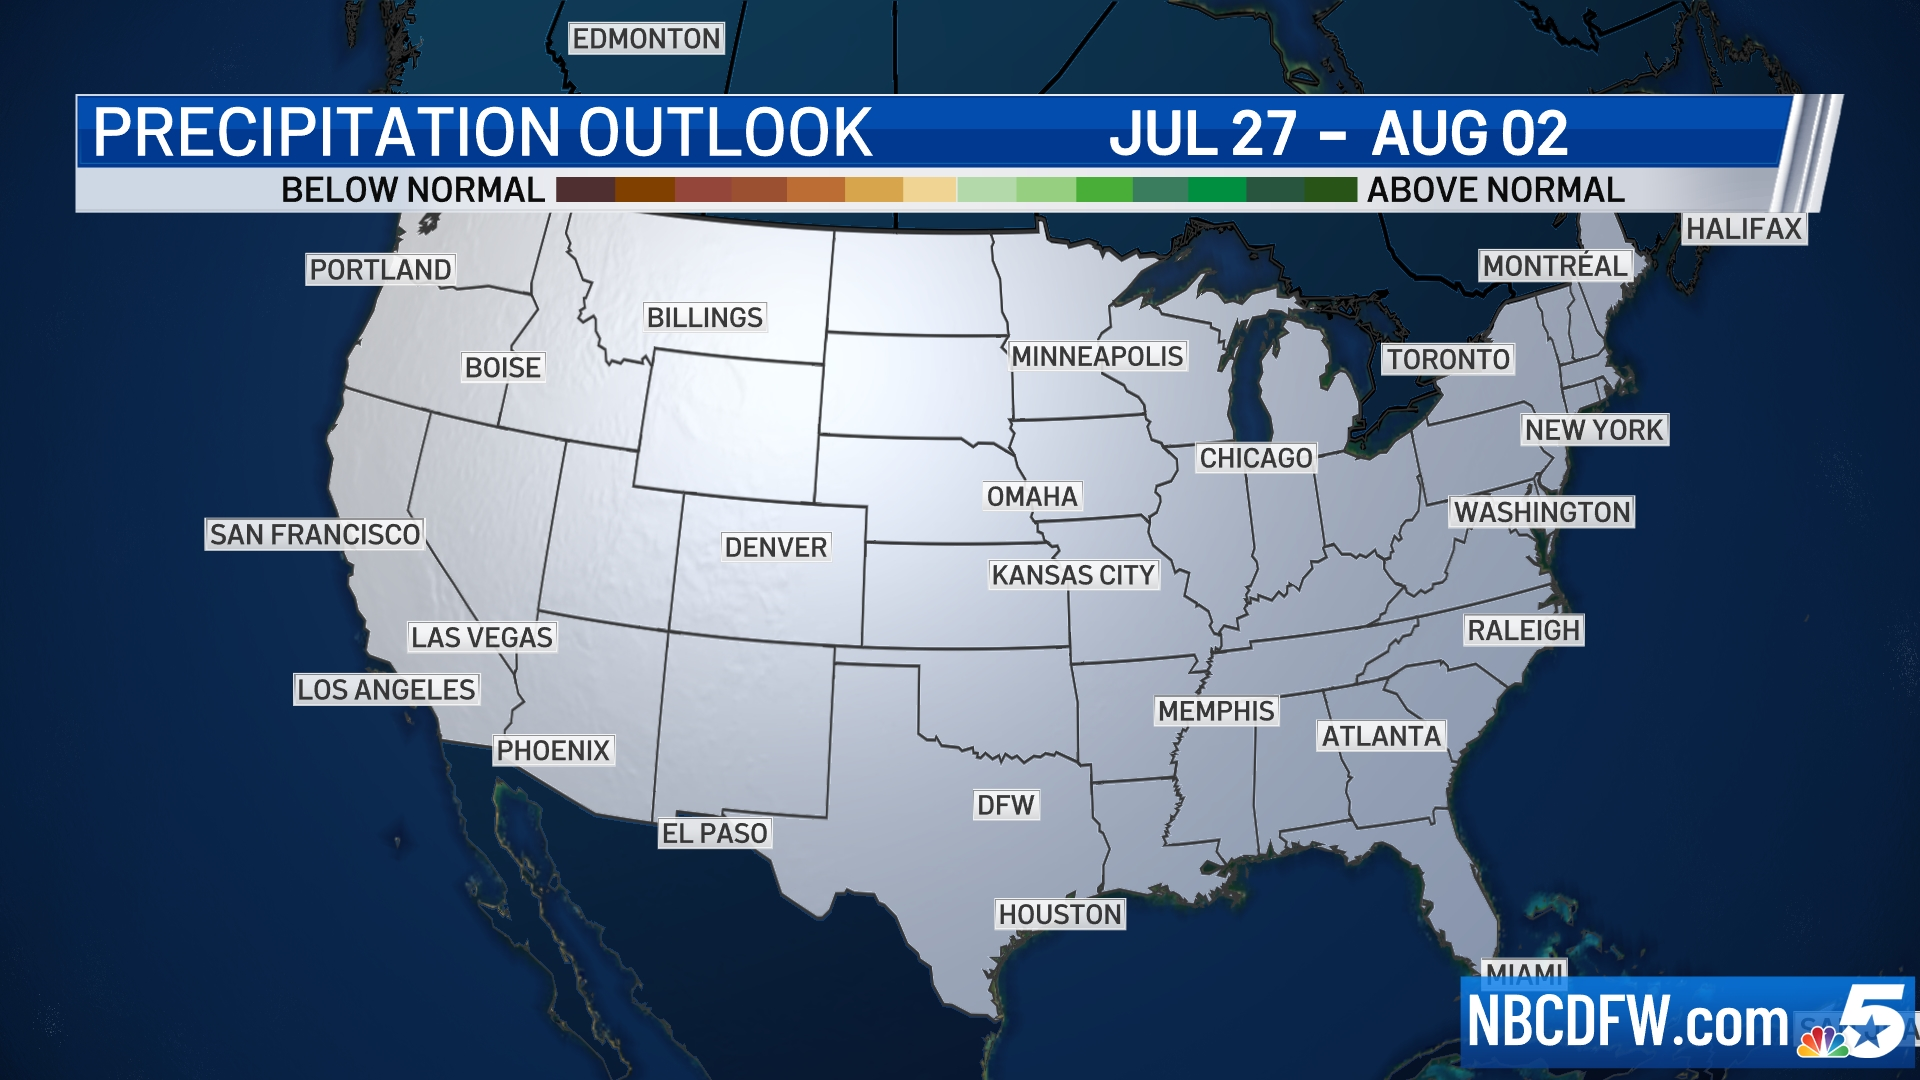 8 to 14 Day Outlook - Precipitation